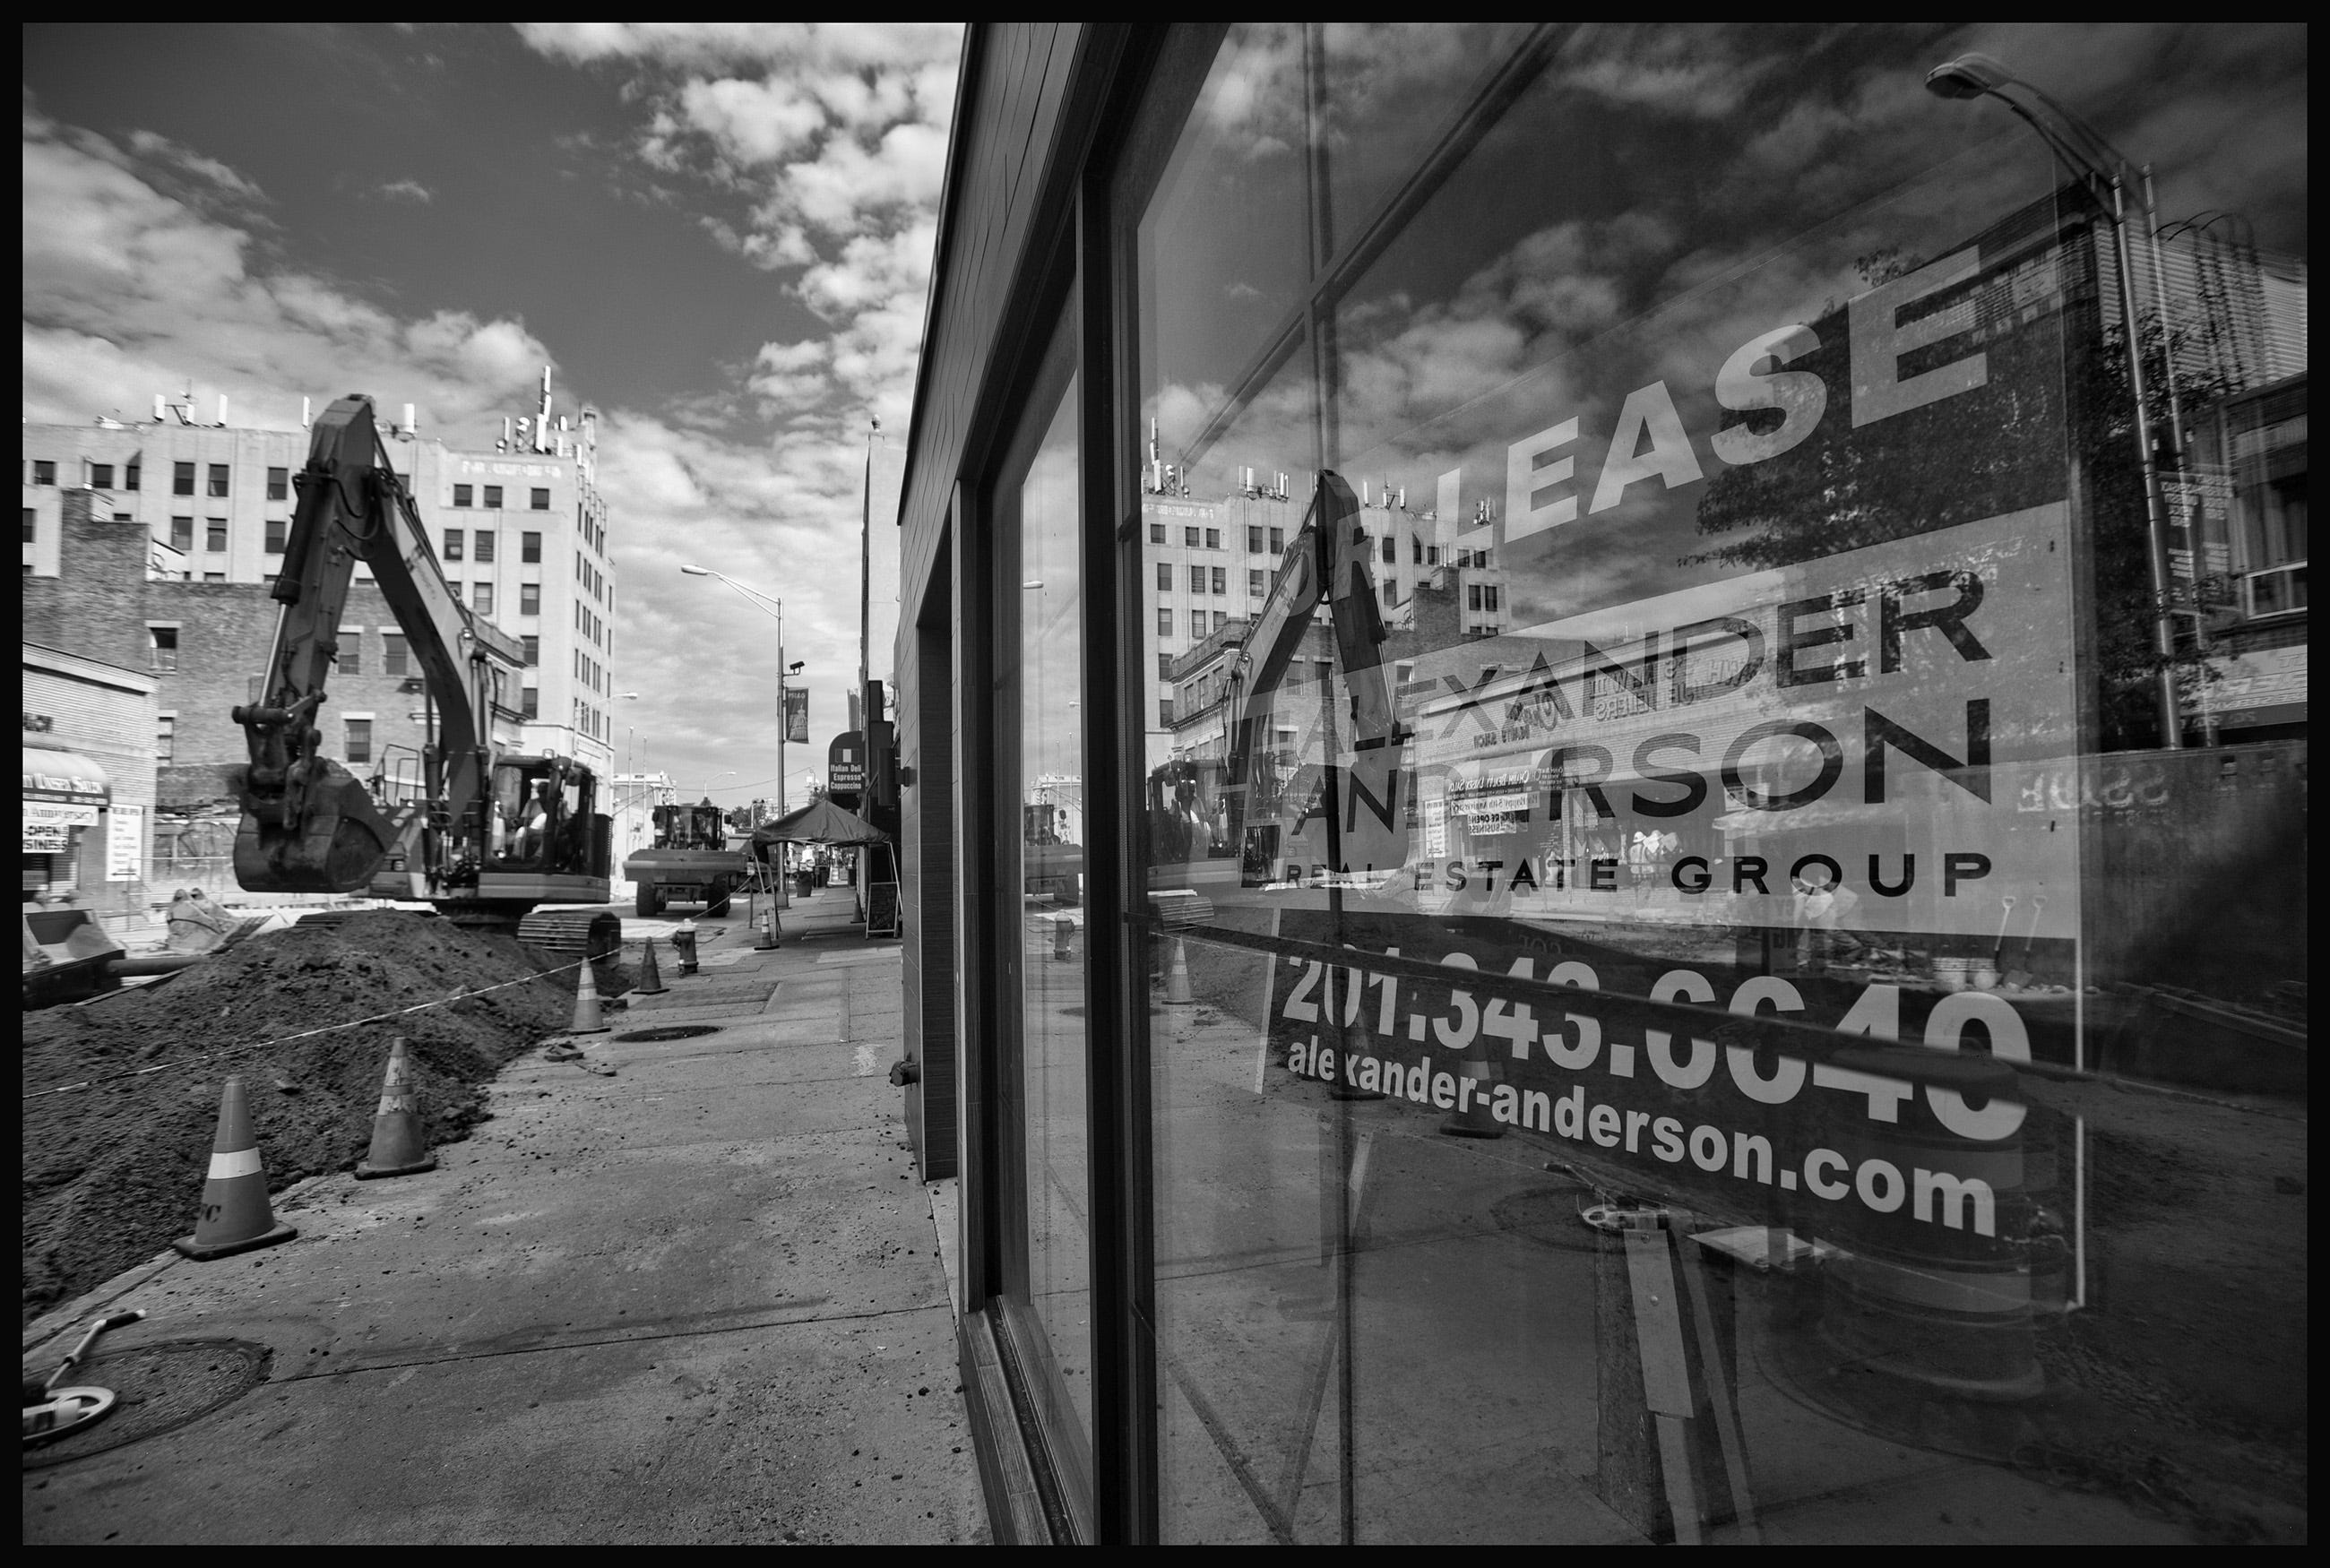 Construction continues in front of a commercial building with a for lease sign in the window along Main Street in Hackensack.